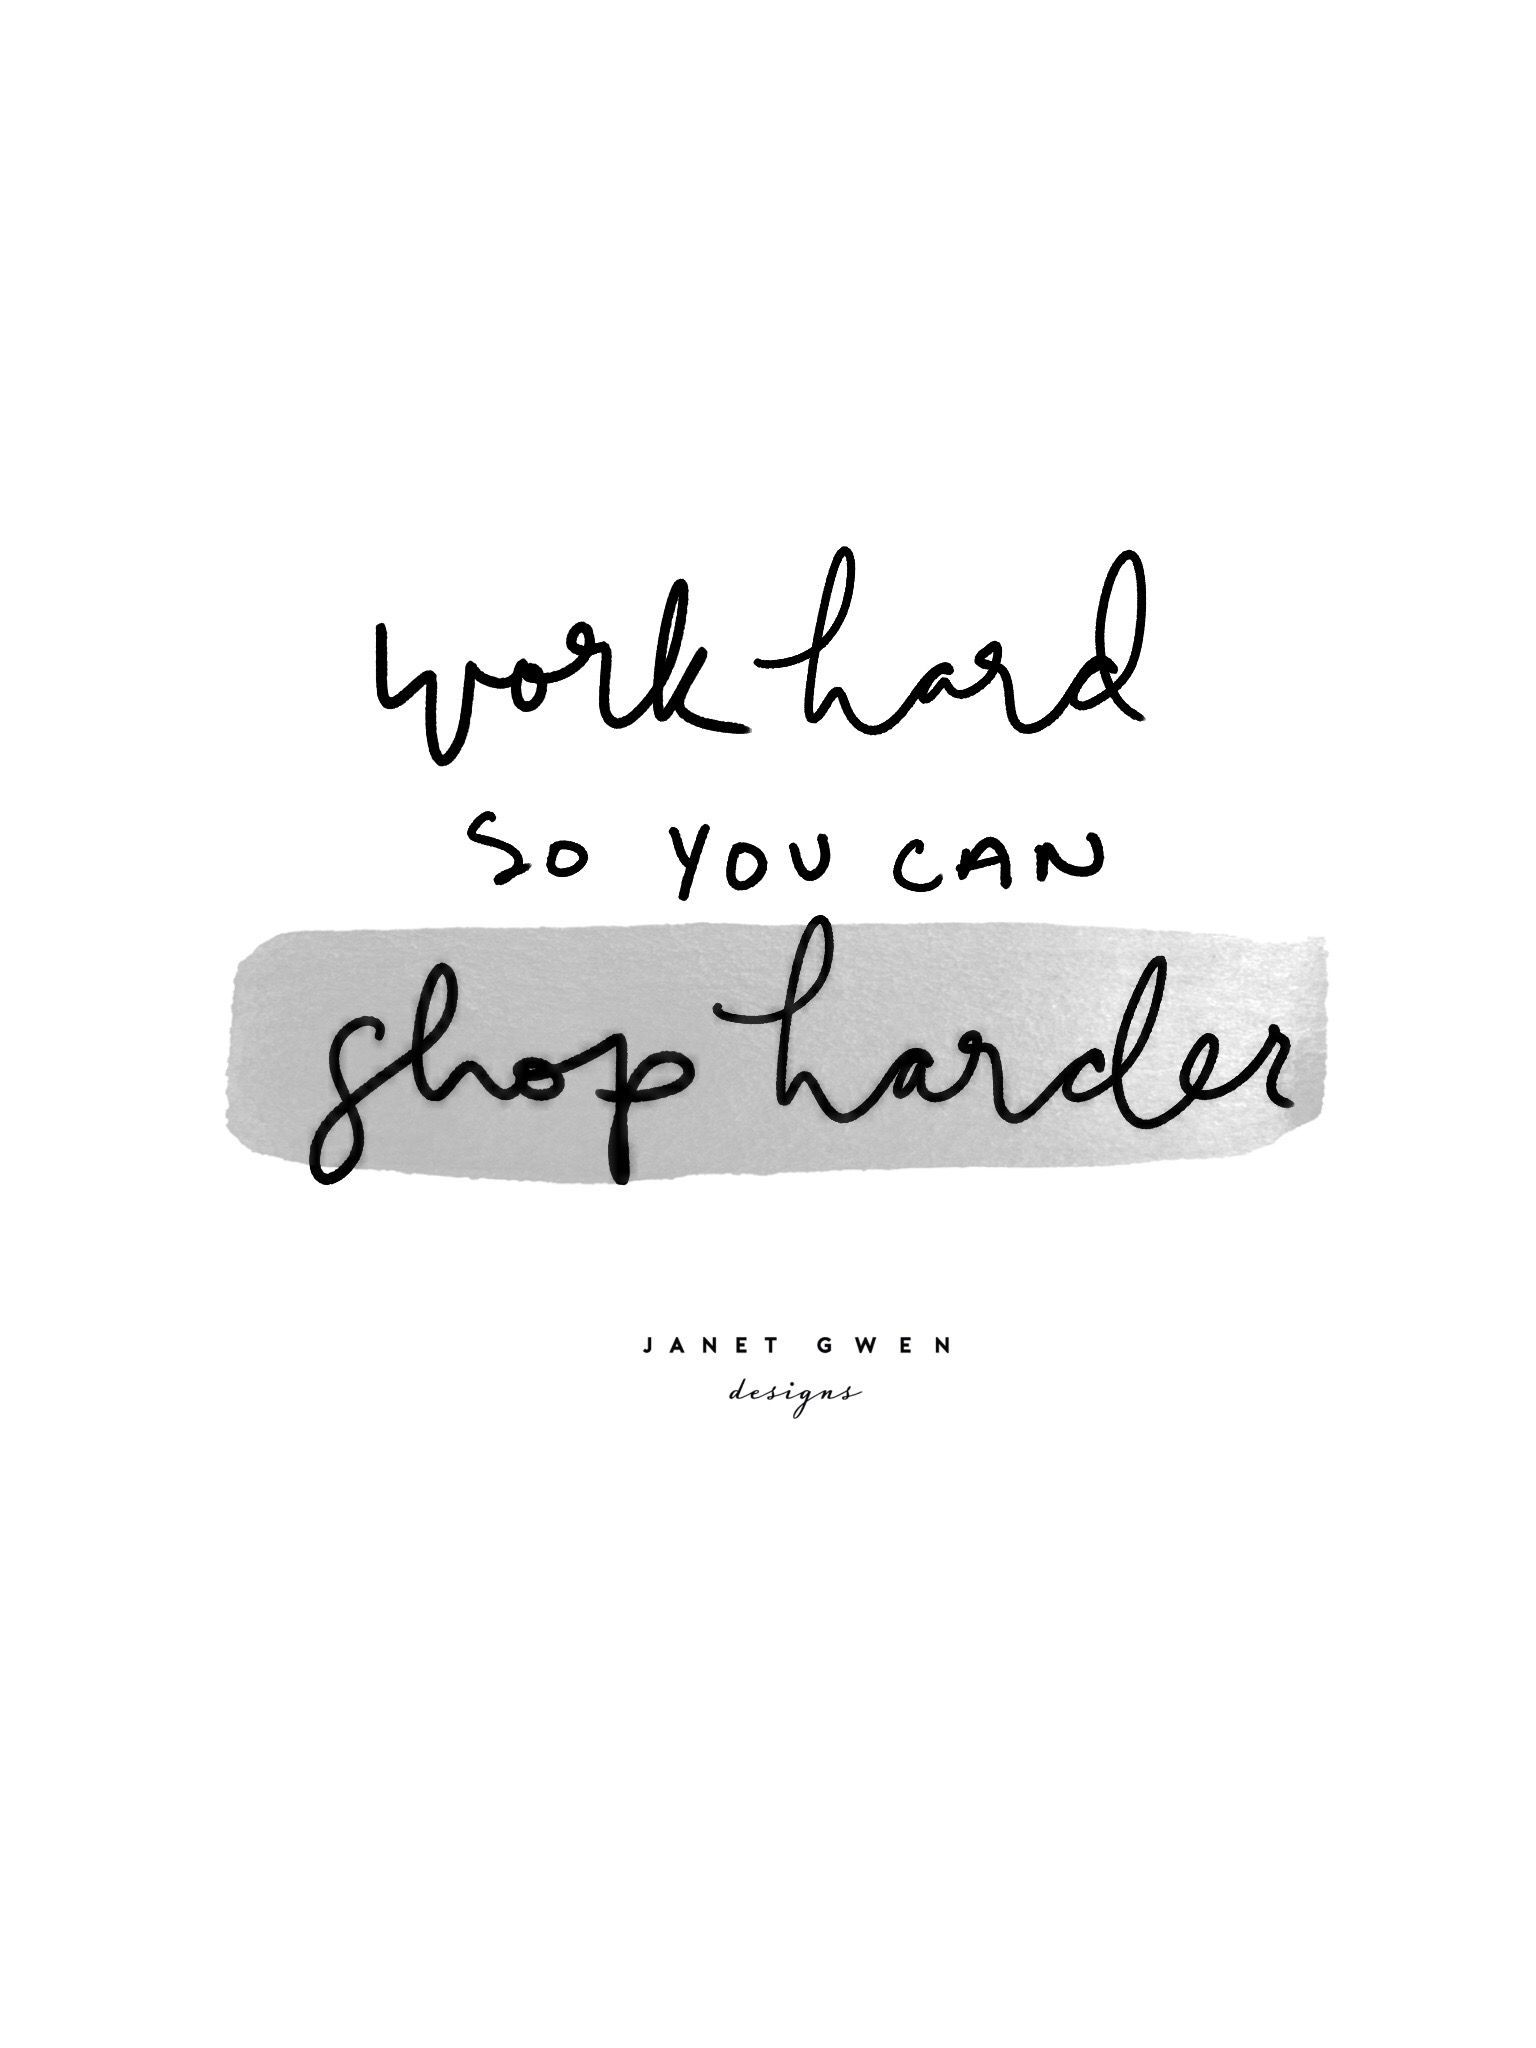 Funny Quotes Shopping Quotes Work Quotes Office Decor Rose And Marble Bedroom Quote Shopping Quotes Funny Iphone Wallpaper Quotes Funny Wall Quotes Diy